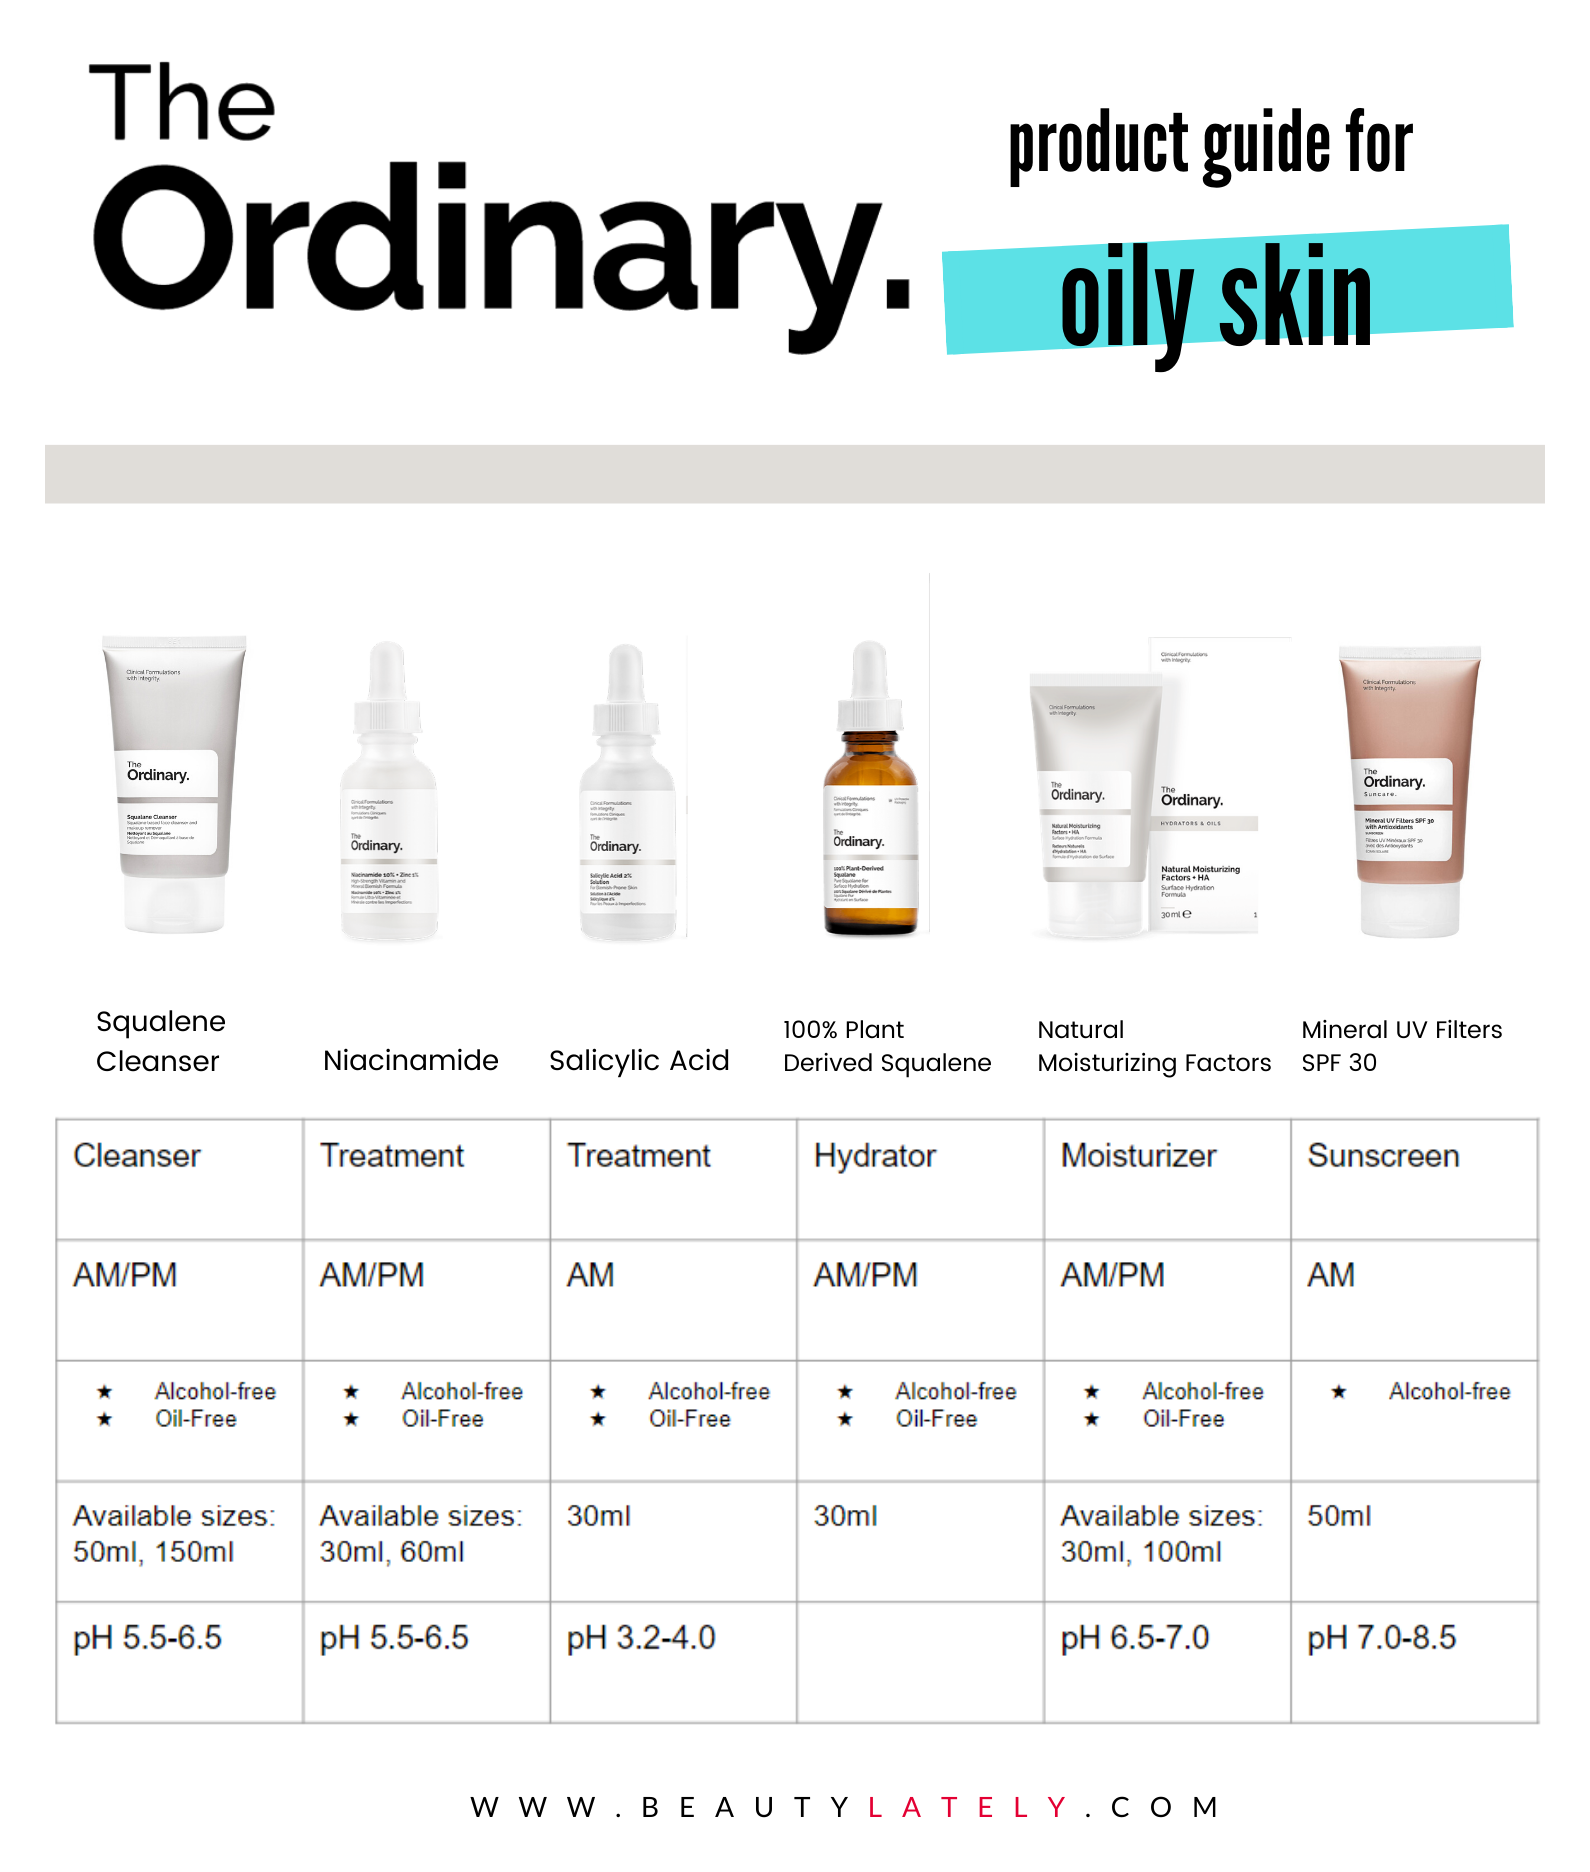 The Ordinary Skincare Guide To Oily Acne Prone Skin Skin Care Regimen For Oily Skin Skincarer In 2020 Skin Acne Treatment Oily Skin Care Routine Oily Skin Care